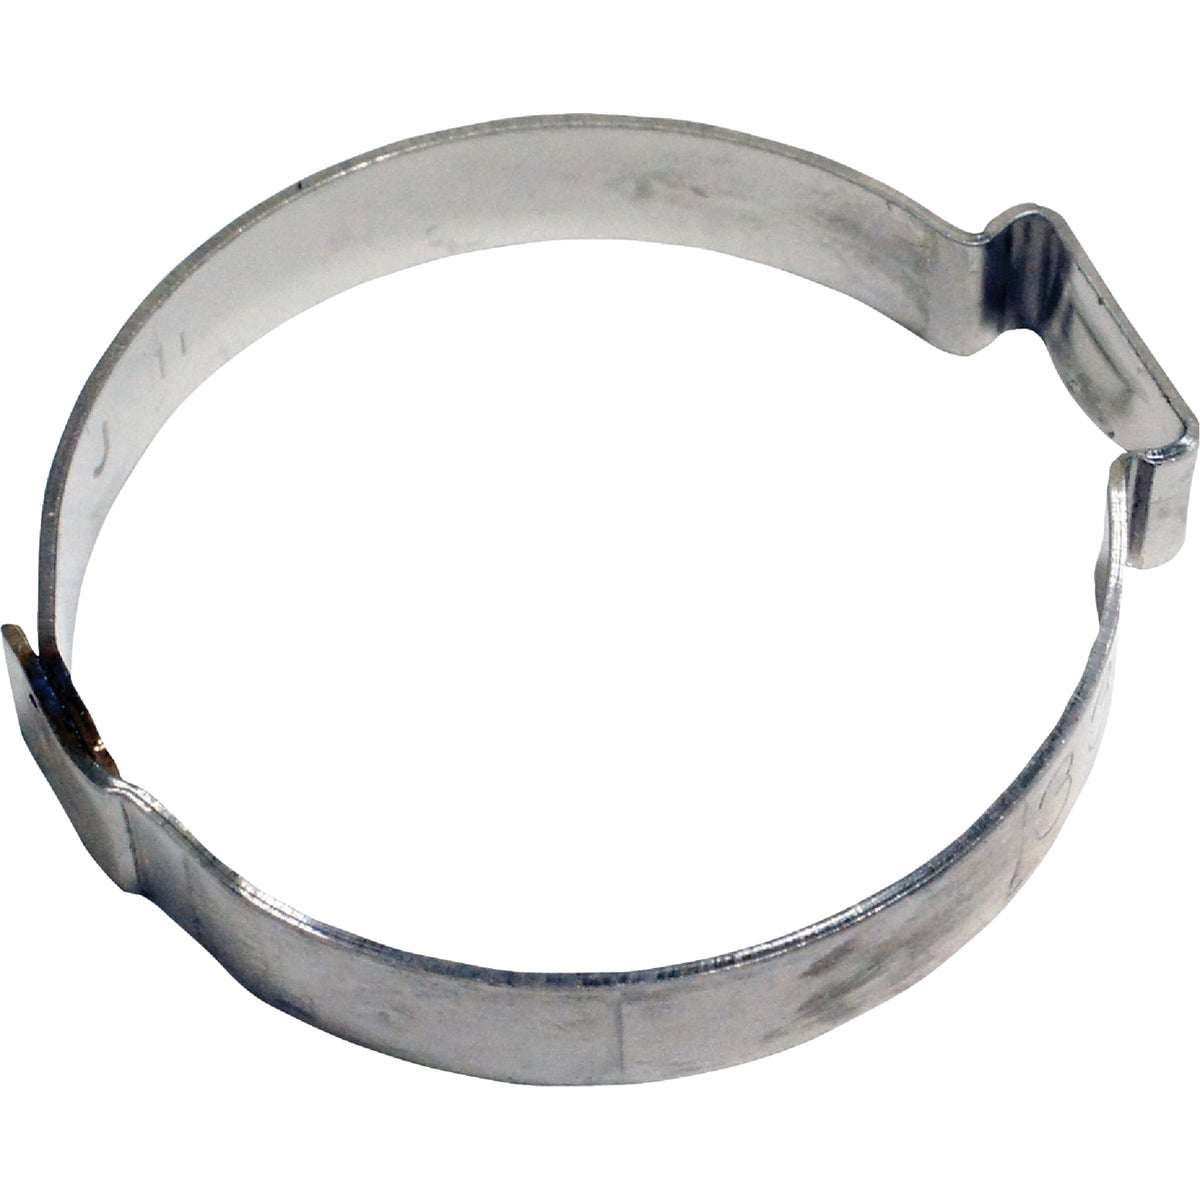 "10PK 1-1/16"" CRIMP CLAMP - 612715E by Ideal Corp"